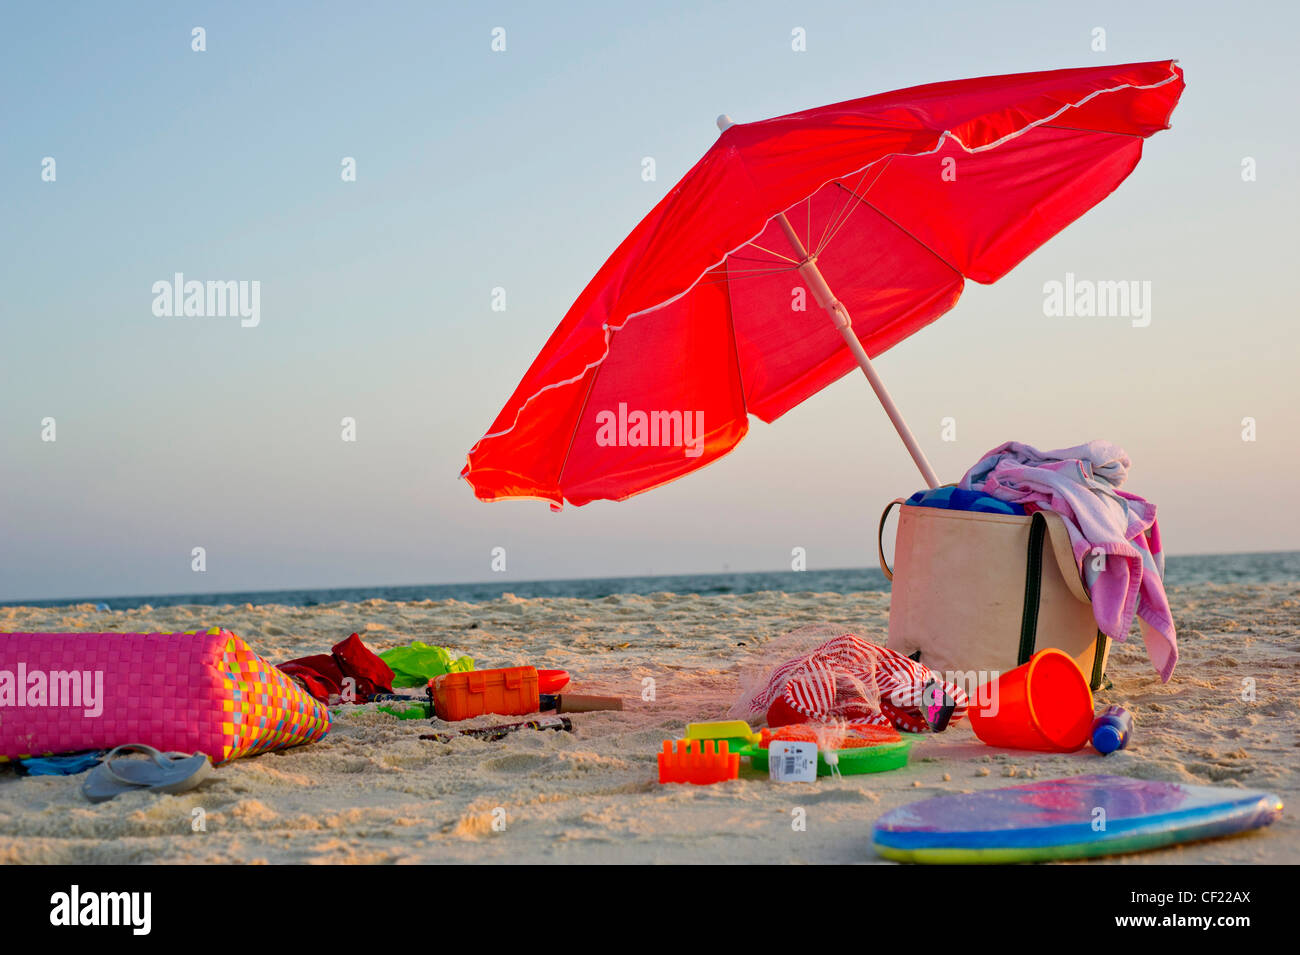 A single red umbrella sits on the beach surrounded by toys as the sun sets. - Stock Image